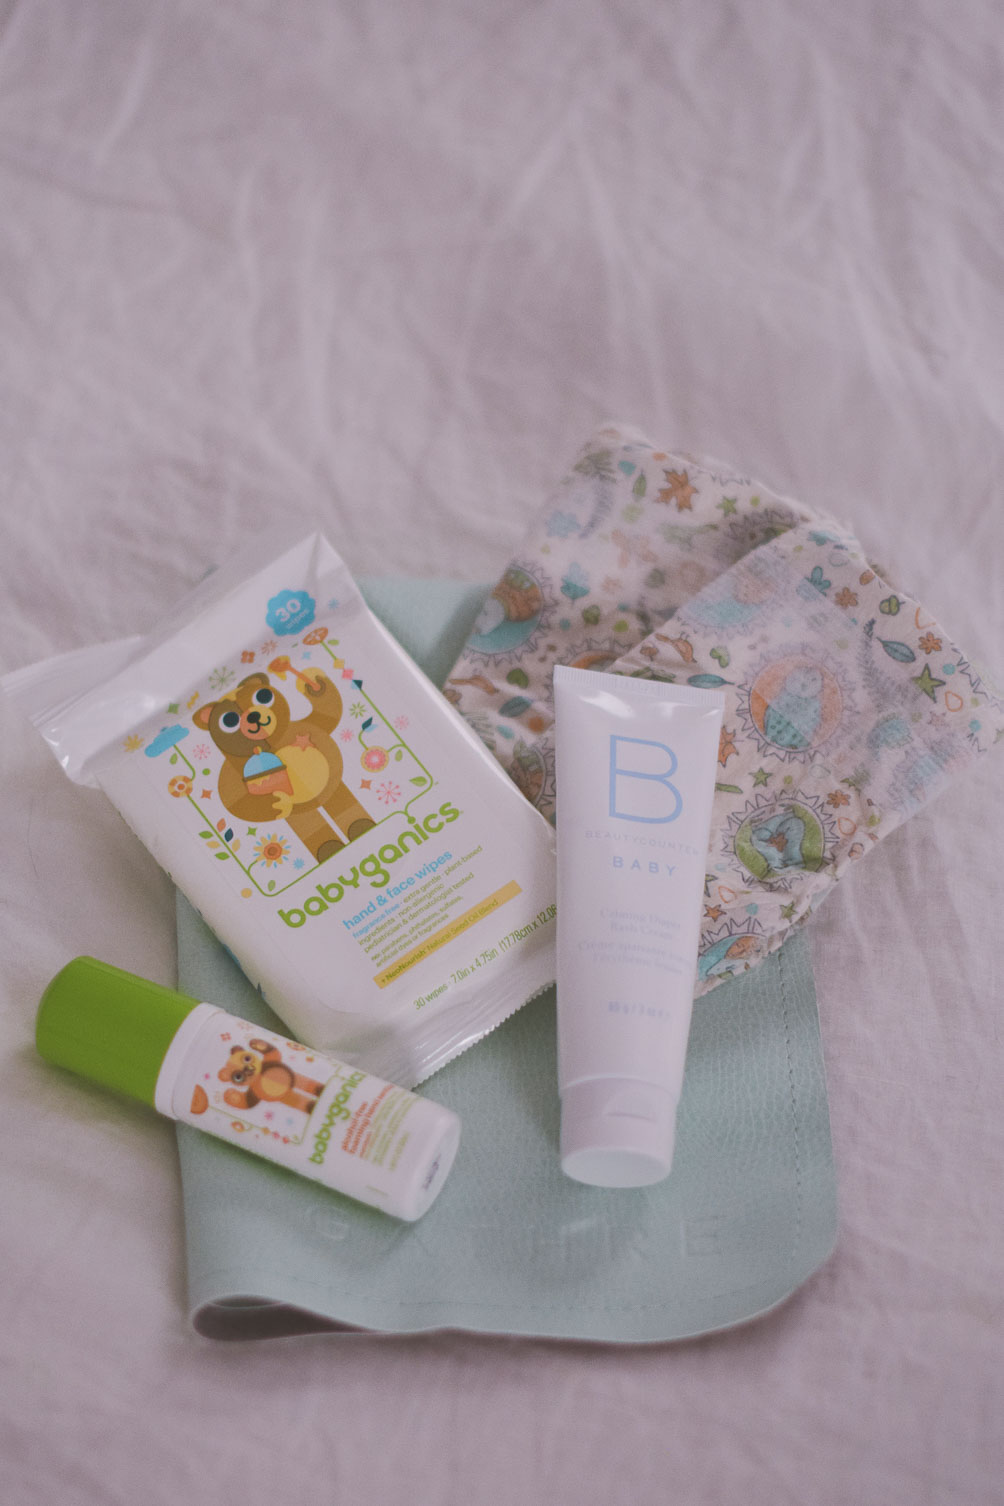 sharing tips on infant travel - how to pack for a baby with downloadable PDF checklist